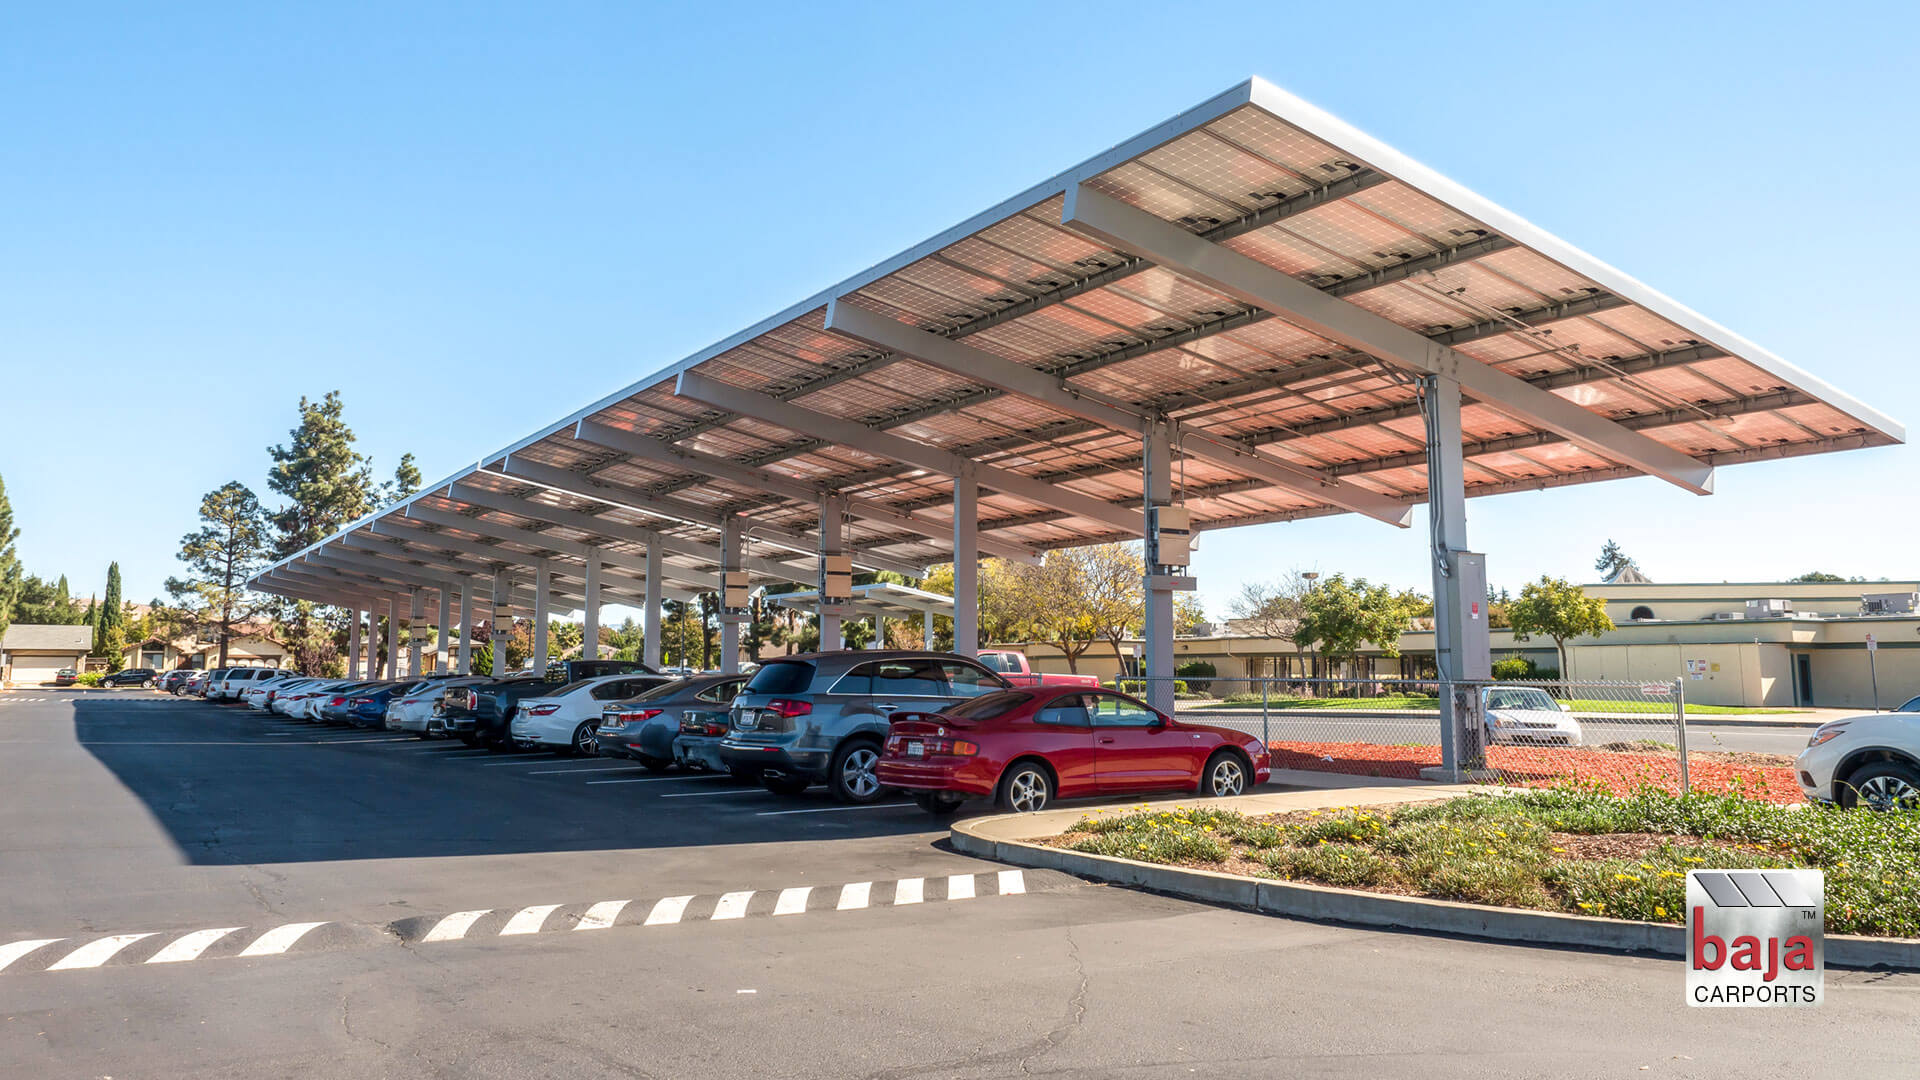 schools like cesar chavez middle school have covered their parking areas with solar covered carports